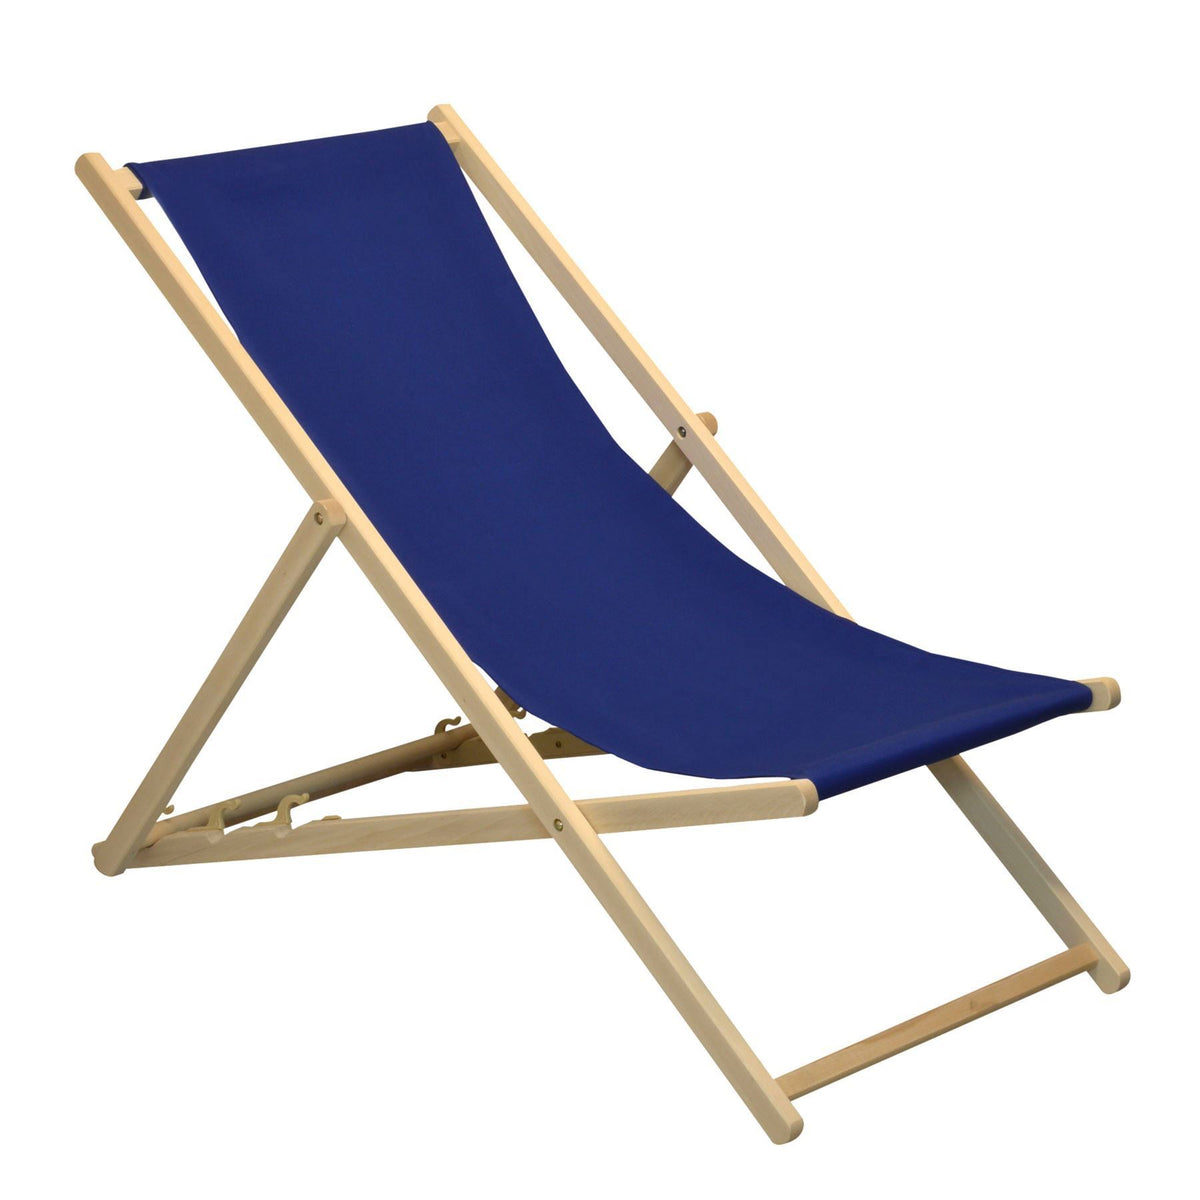 Harbour Housewares Beach Deck Chair - Navy Blue